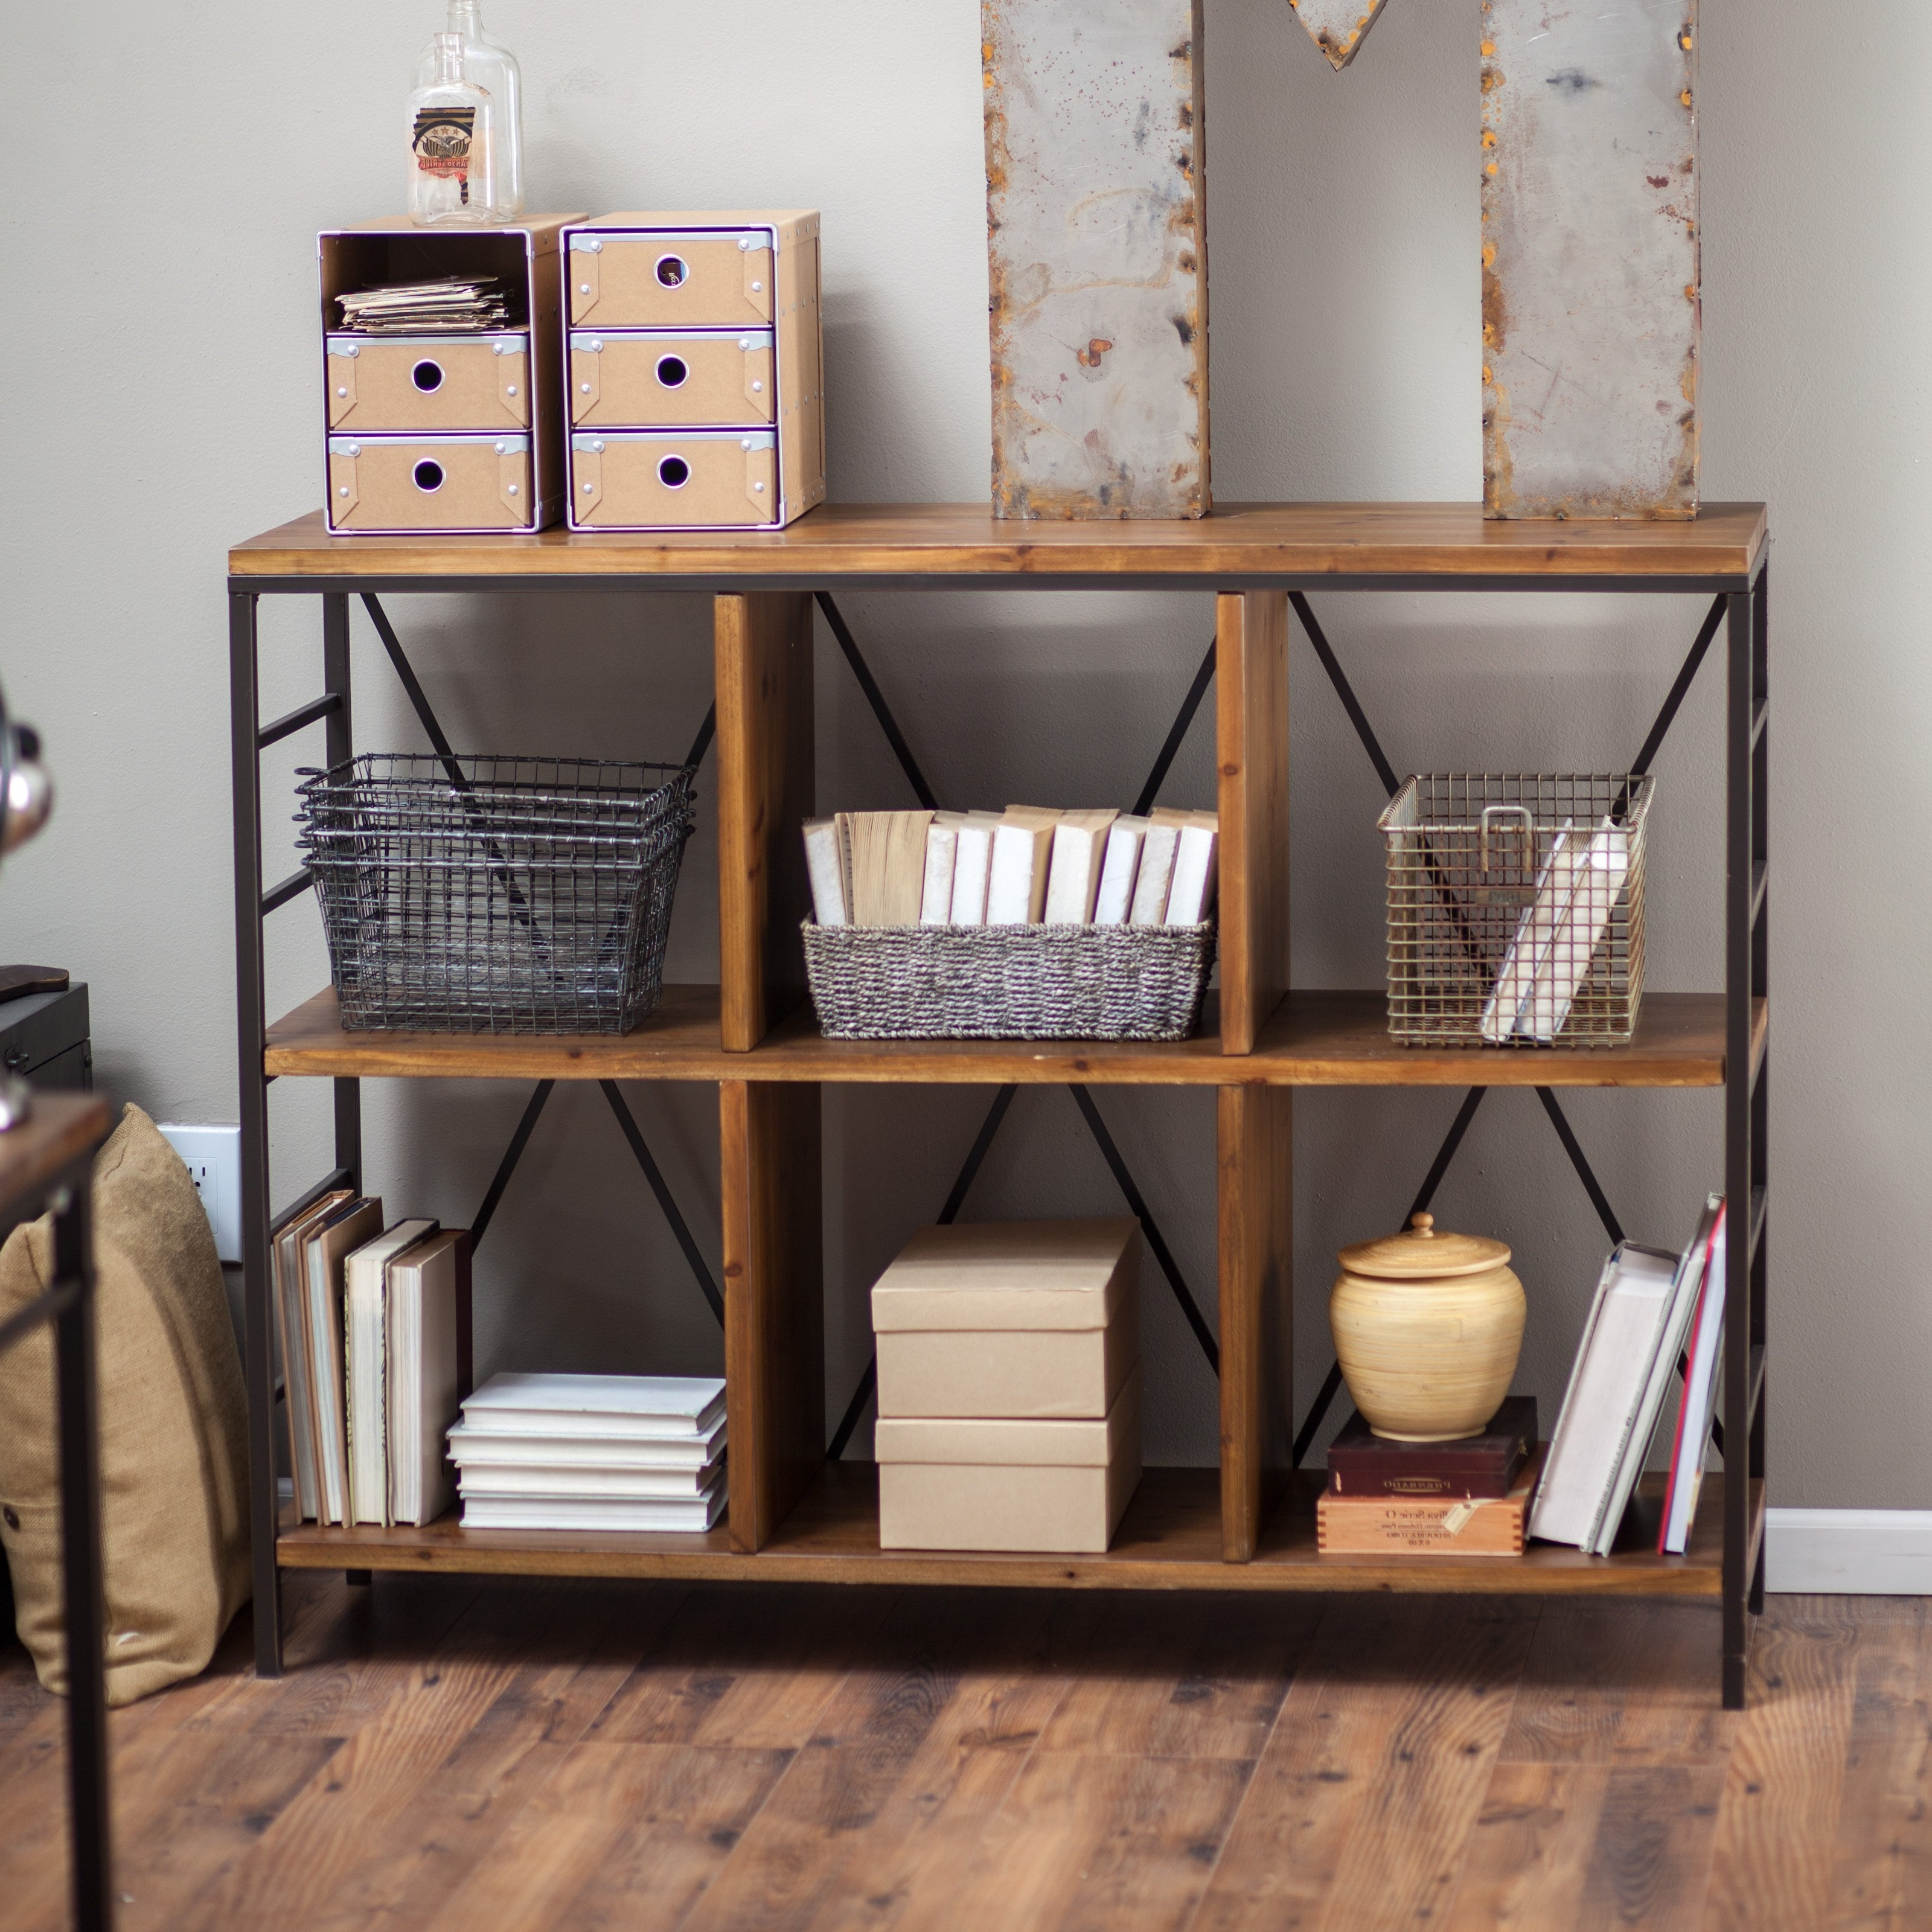 Trendy Furniture Home: Furniture Home Horizontal Bookcases Formidable Throughout Horizontal Bookcases (View 10 of 15)